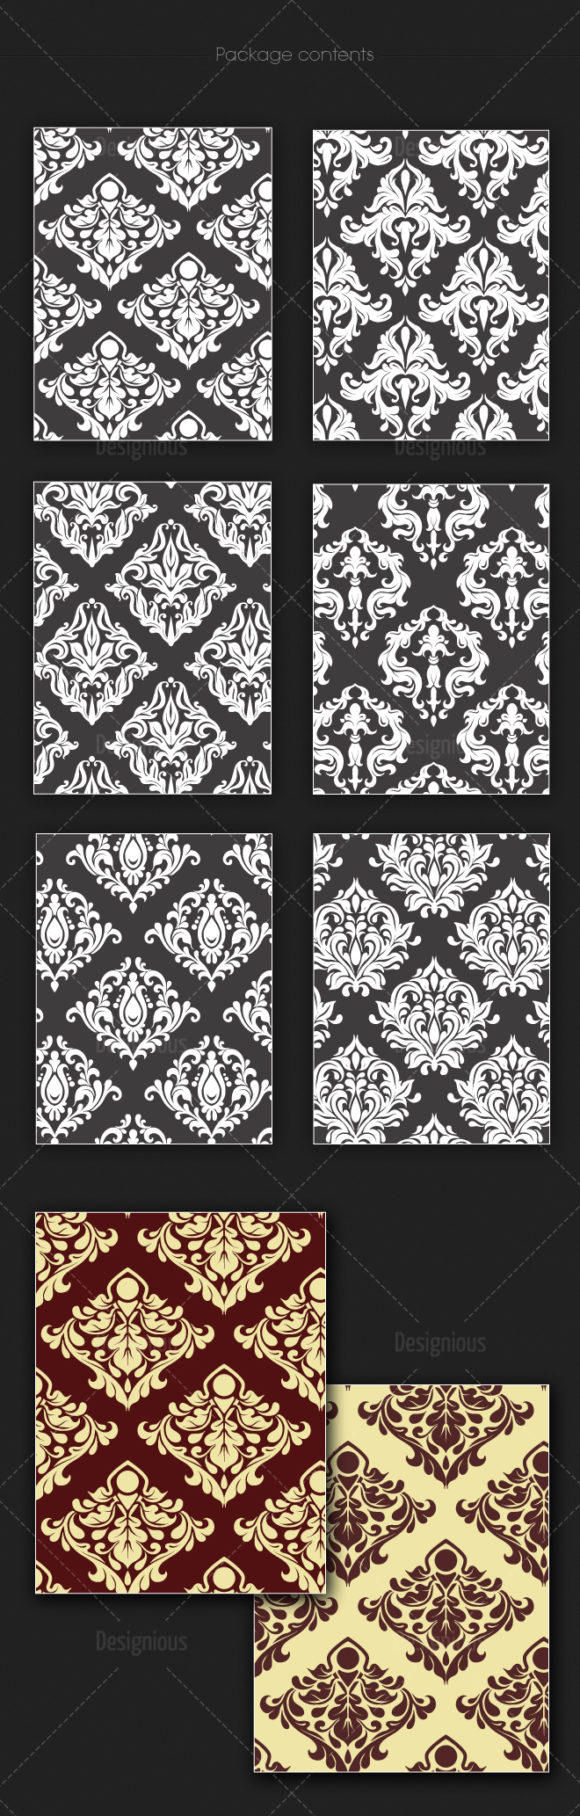 Seamless Patterns Vector Pack 135 6